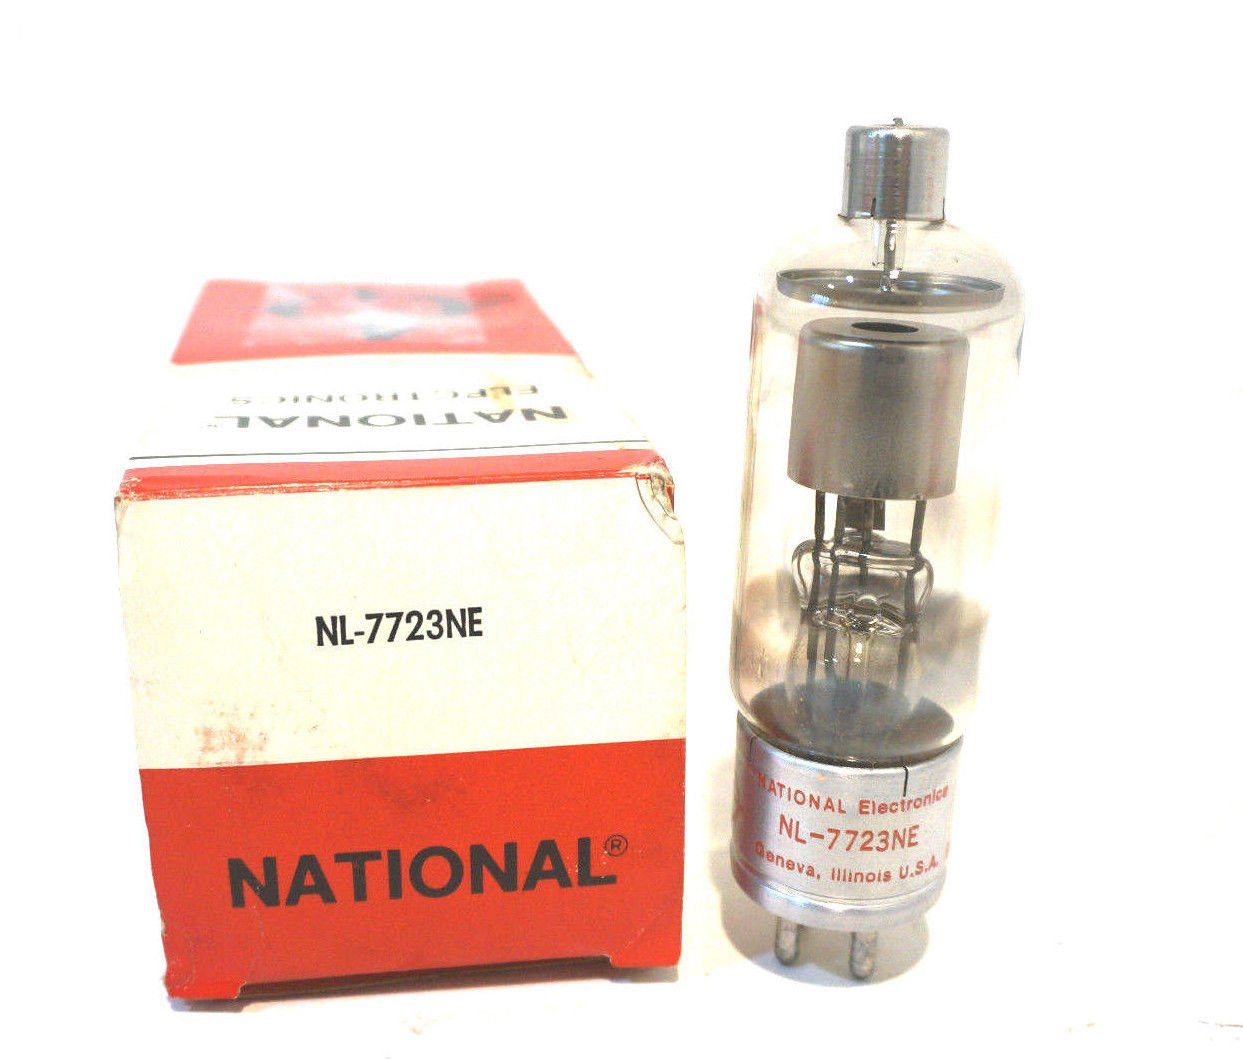 NEW NATIONAL ELECTRONICS NL-7723NE VACUUM TUBE NL7723NE